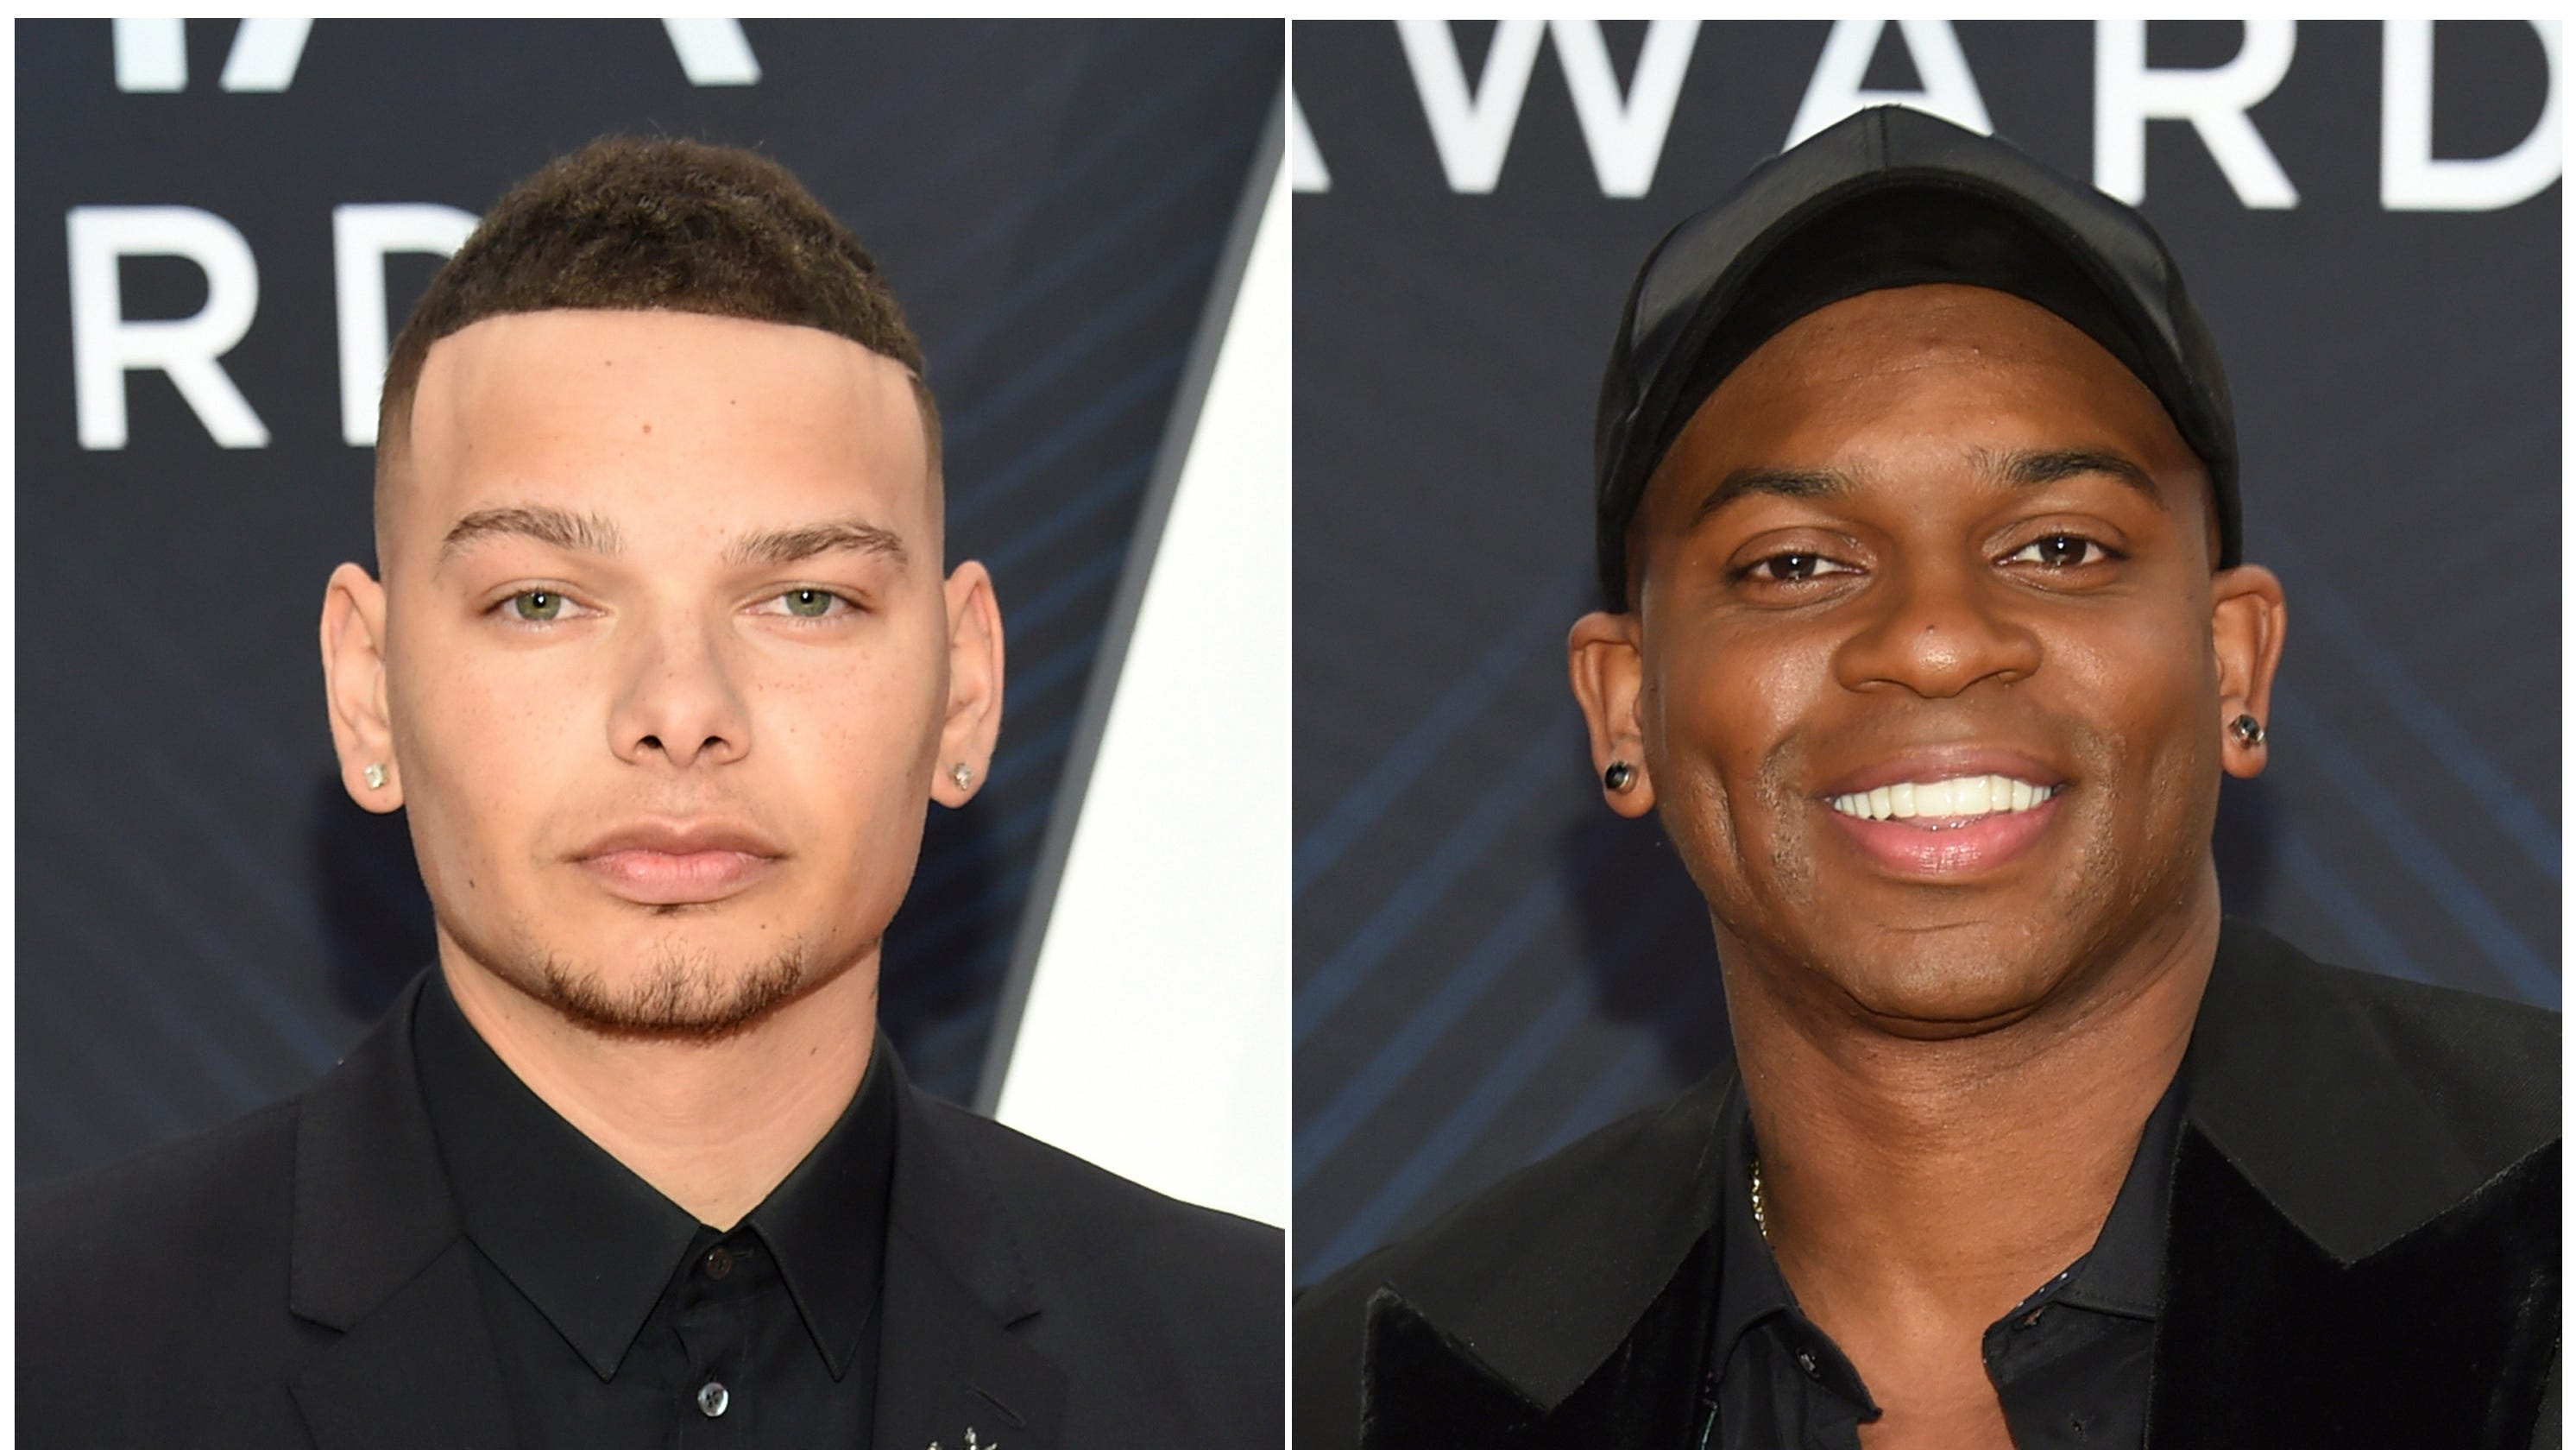 jimmie allen and kane brown have historic week on country music charts